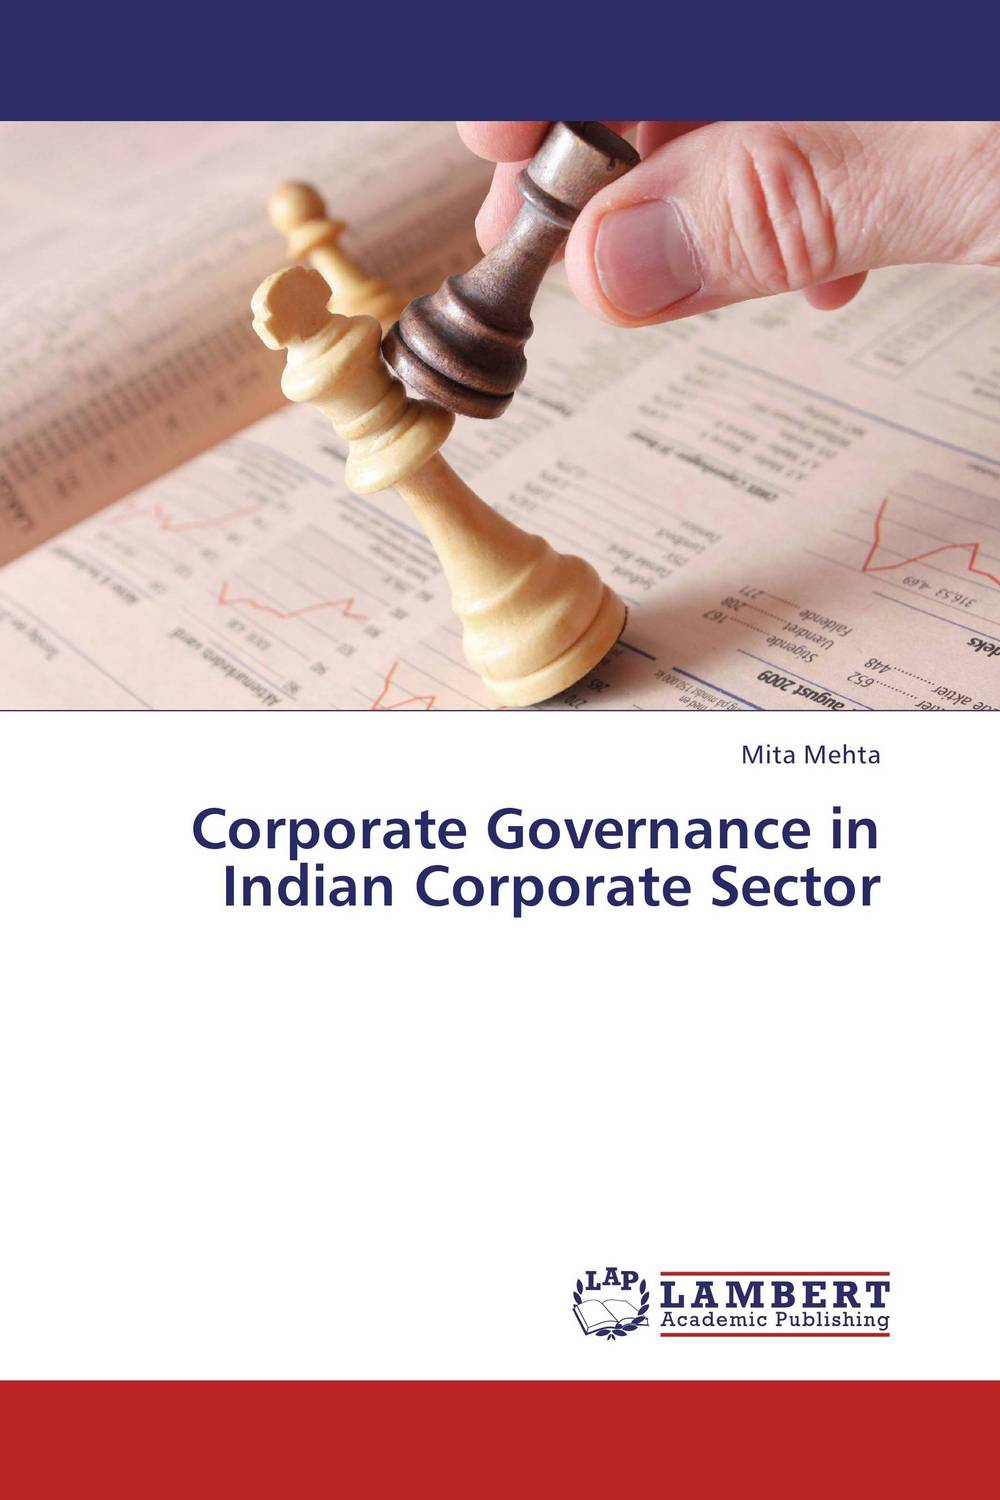 Corporate Governance in Indian Corporate Sector corporate governance audit quality and opportunistic earnings